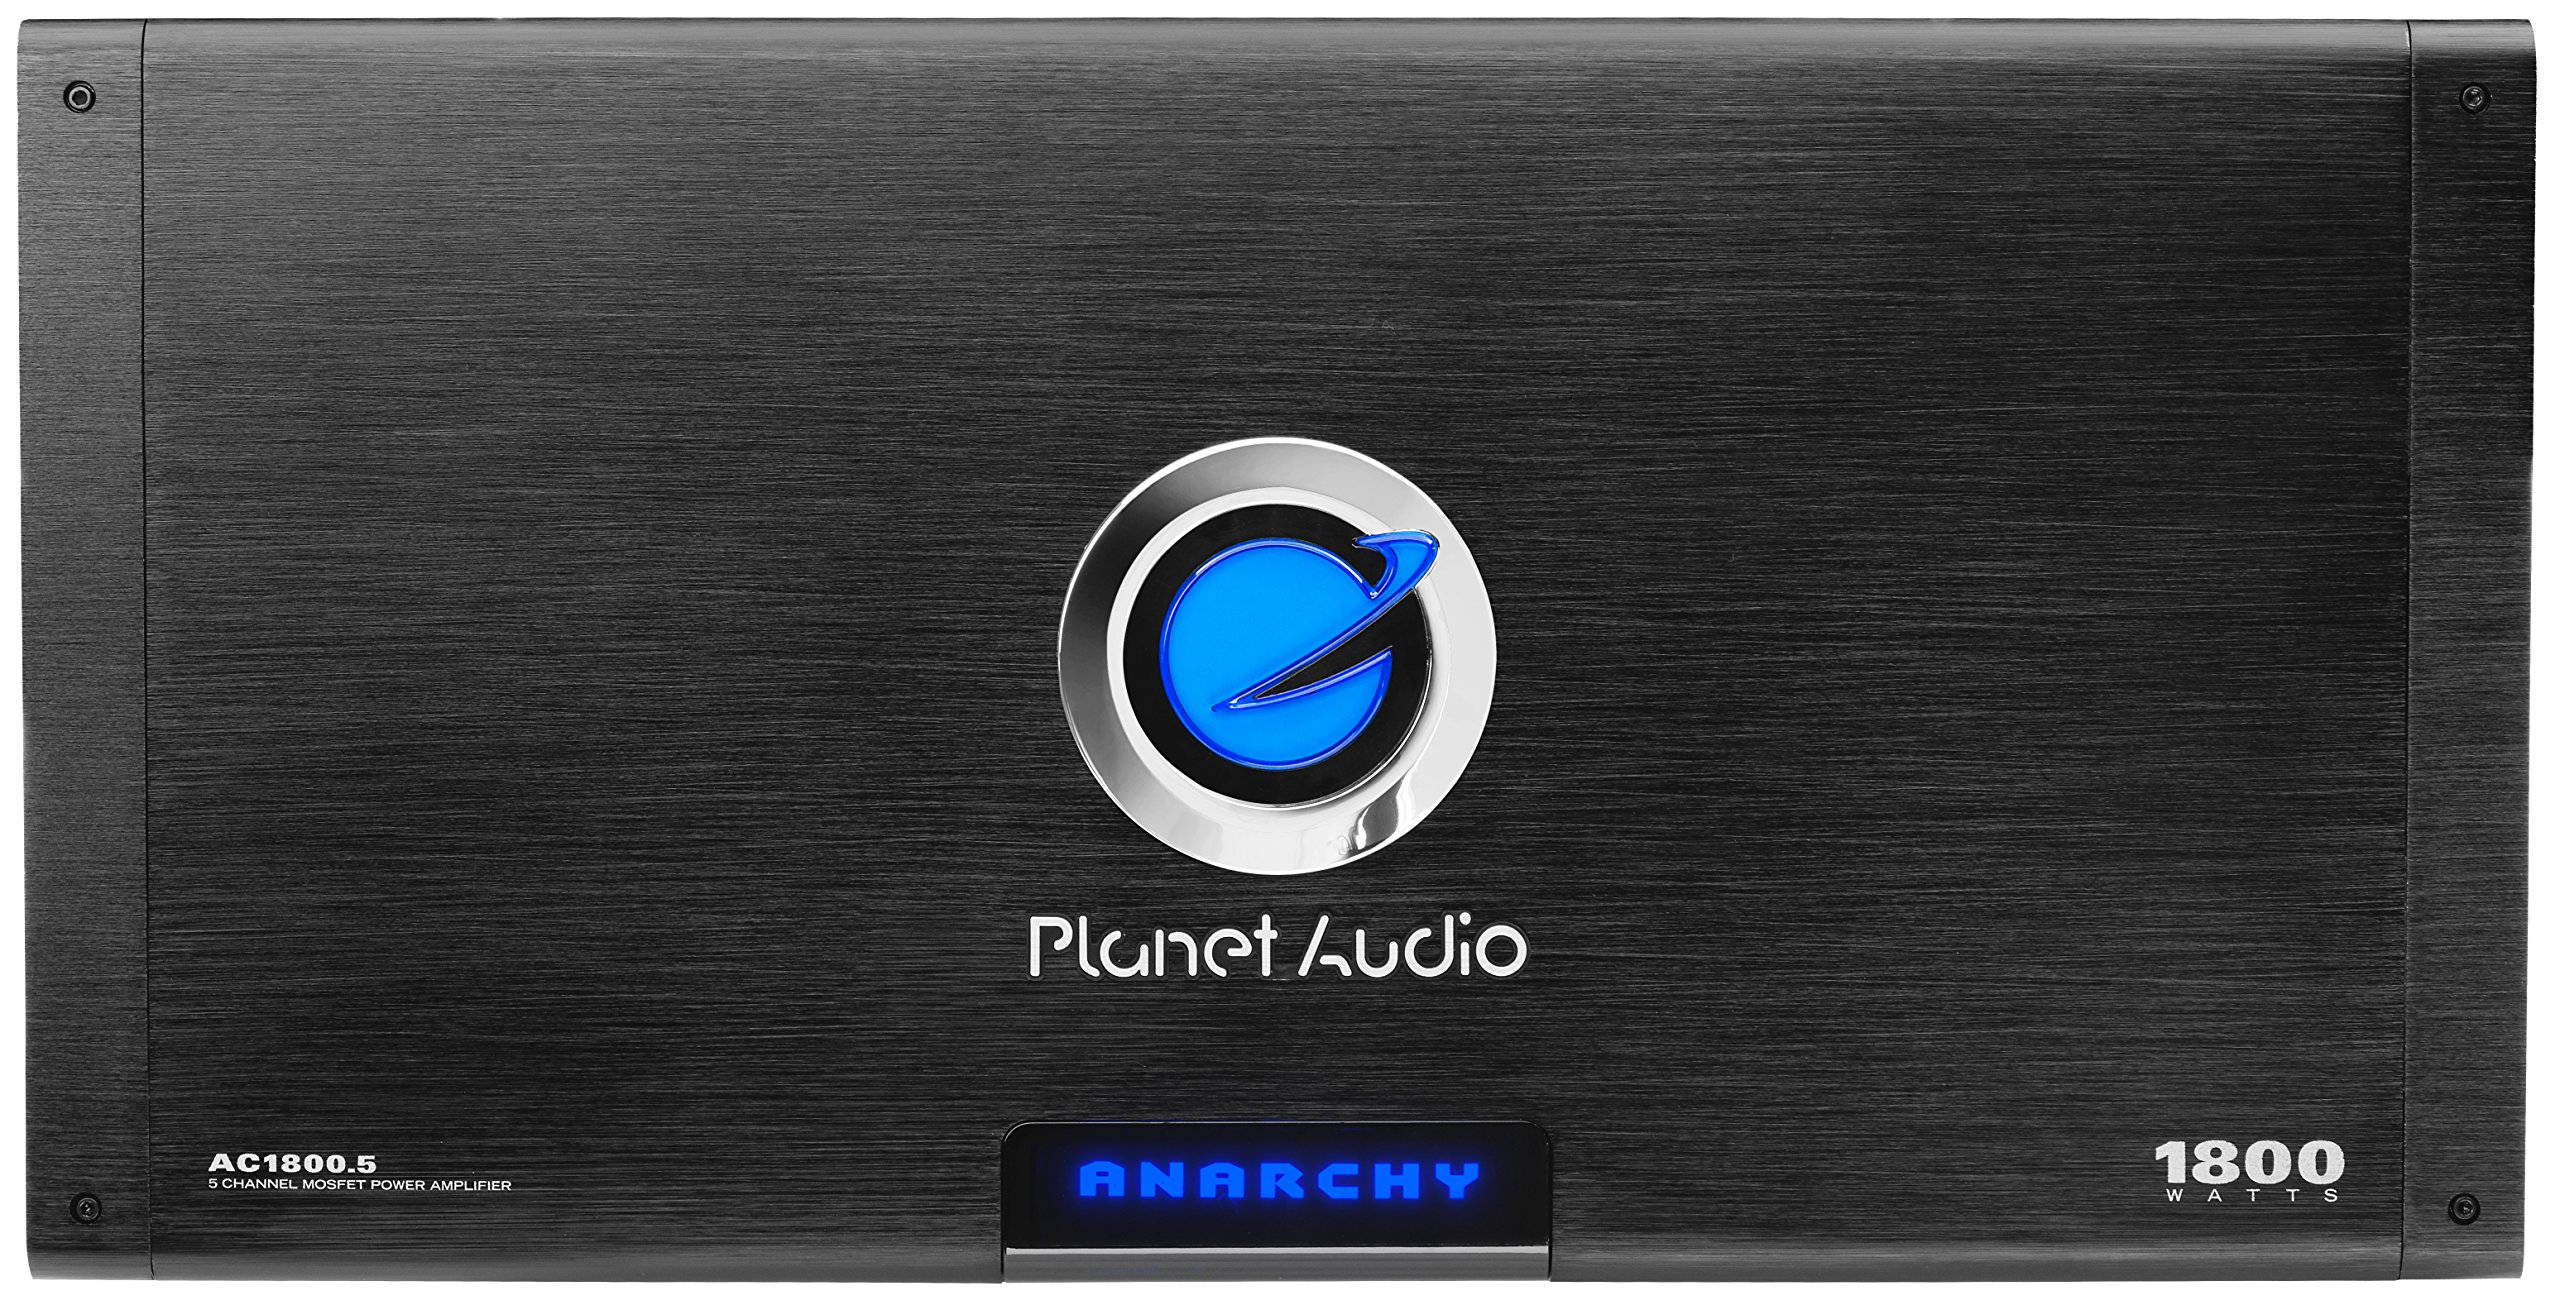 Planet Audio AC1800.5 Anarchy 1800 Watt, 5 Channel, 2/4 Ohm Stable Class A/B, Full Range, Bridgeable, MOSFET Car Amplifier with Remote Subwoofer Control